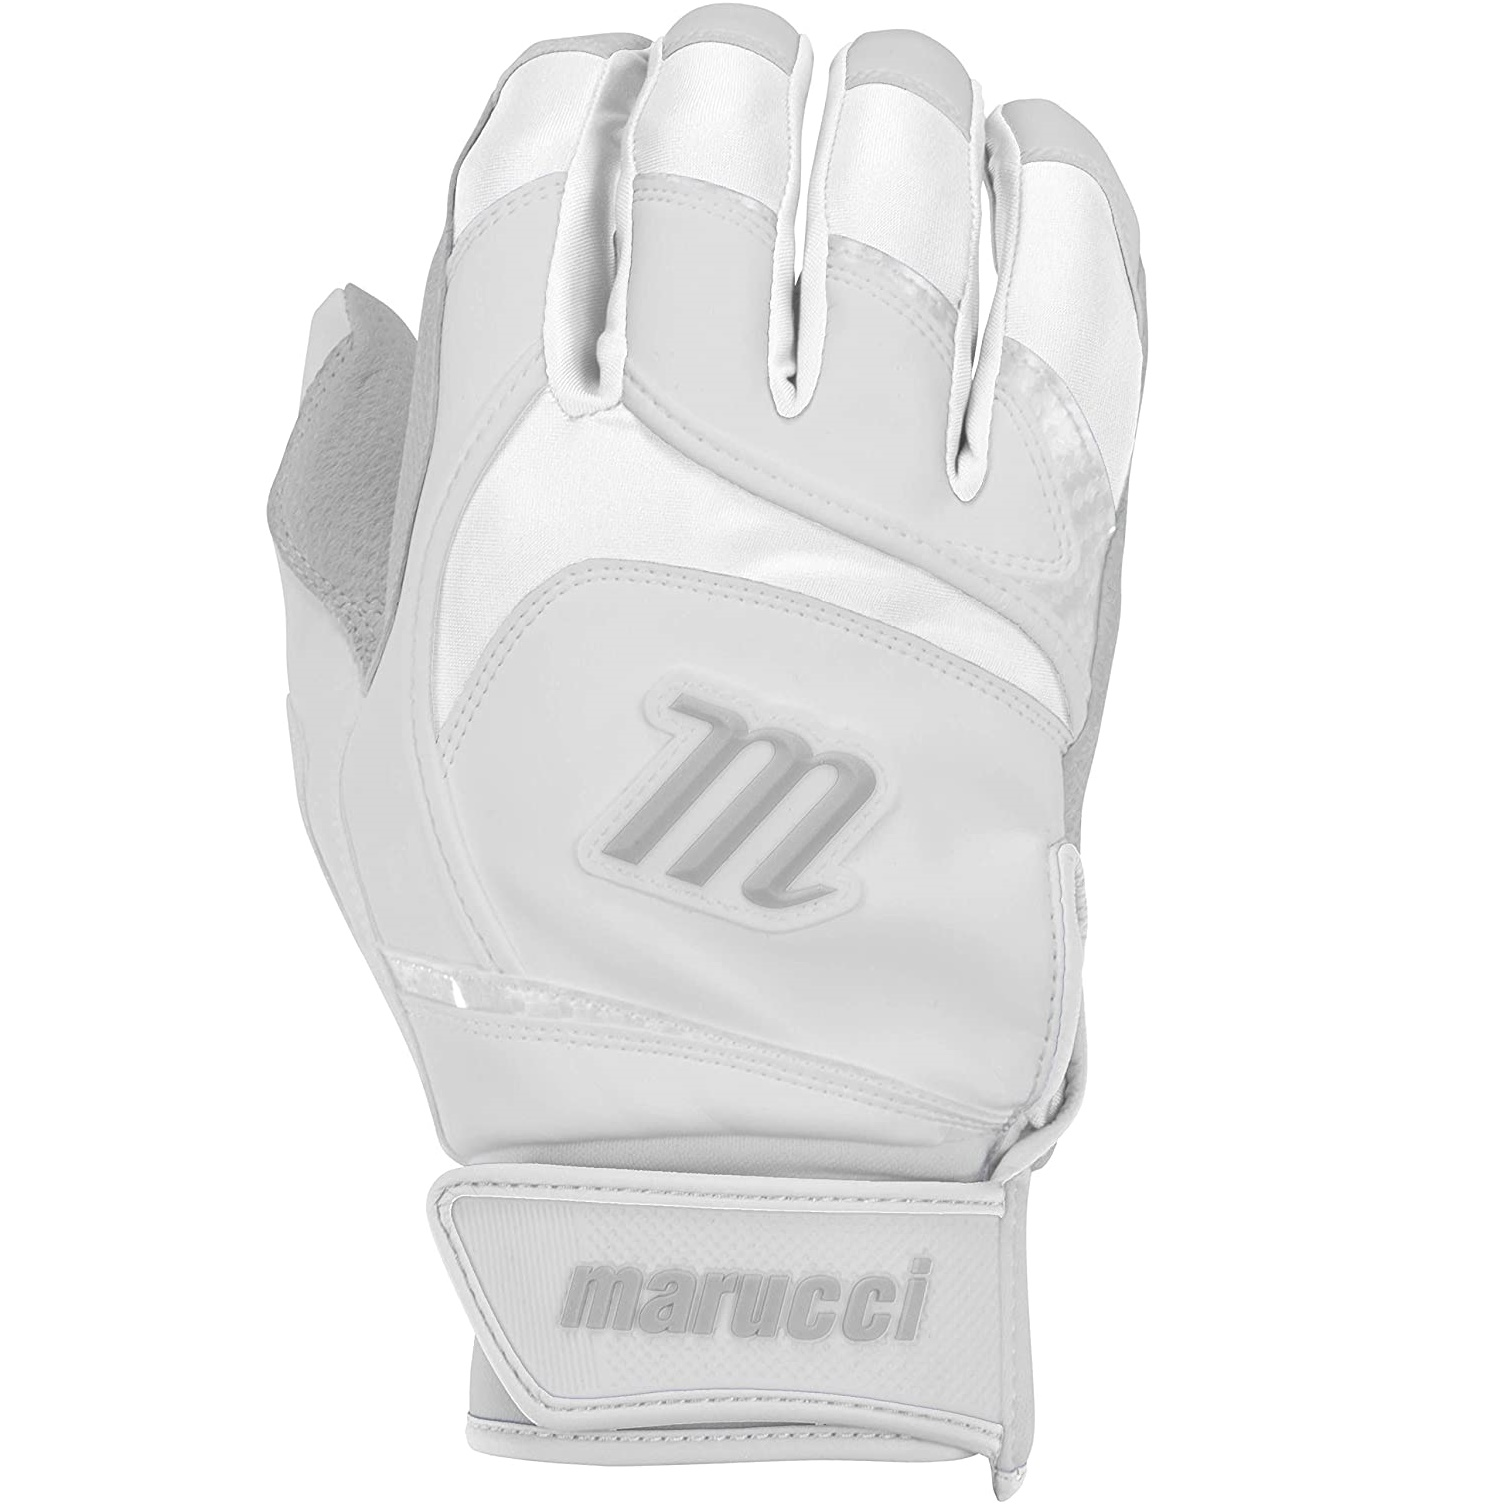 marucci-signature-youth-batting-gloves-white-youth-medium MBGSGN2Y-WW-YM Marucci  Digitally embossed perforated Cabretta sheepskin palm provides maximum grip and durability